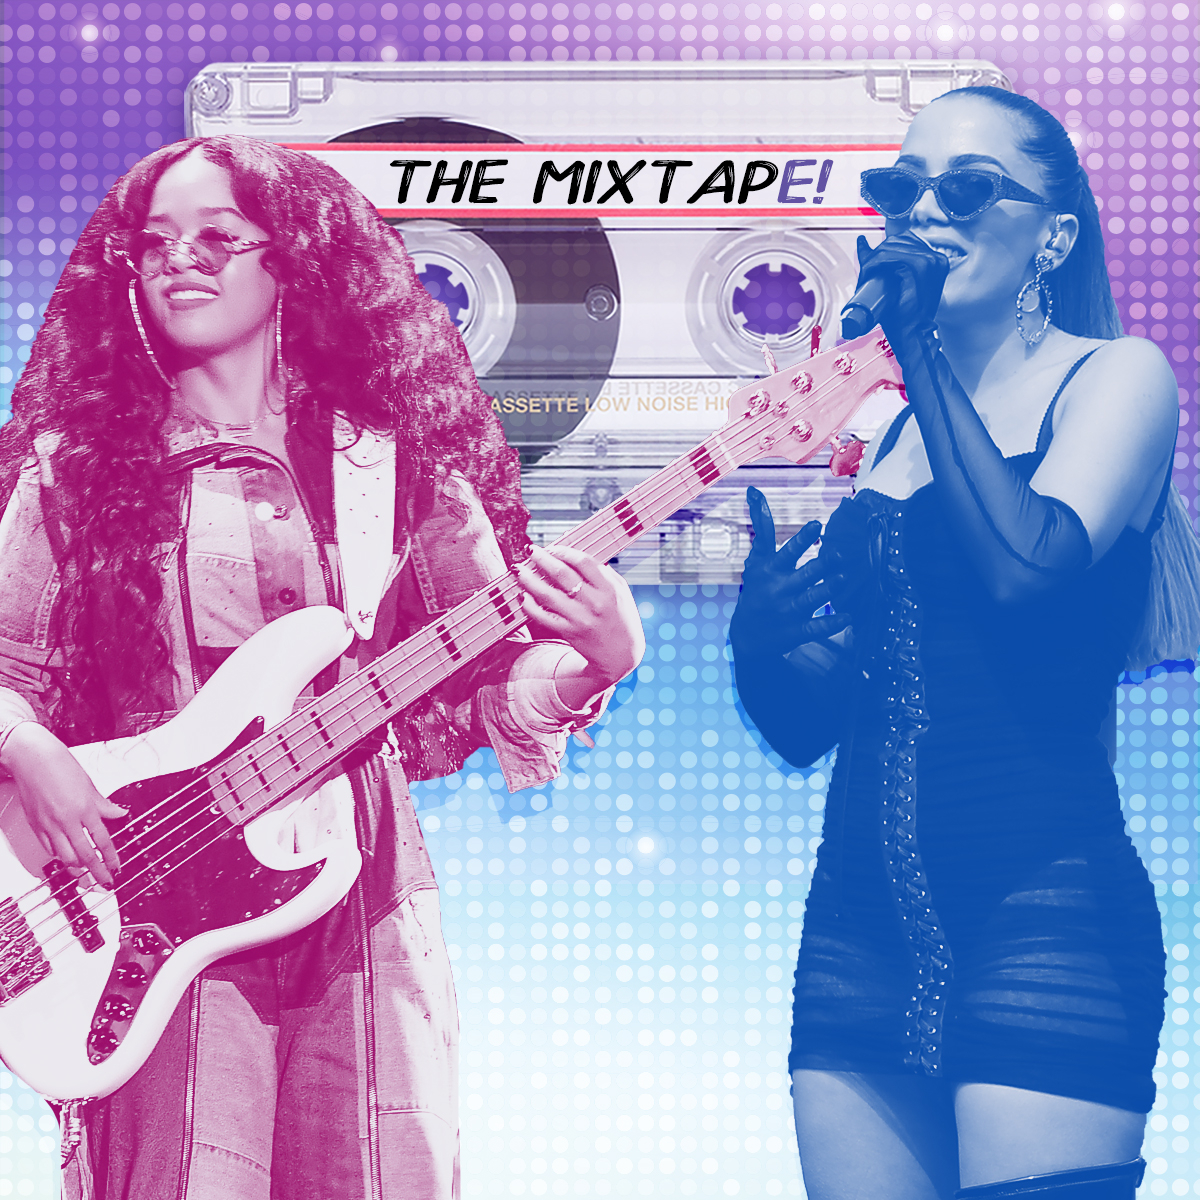 The MixtapE! Presents H.E.R., Anitta, Katy Perry and More New Music Musts - E! Online